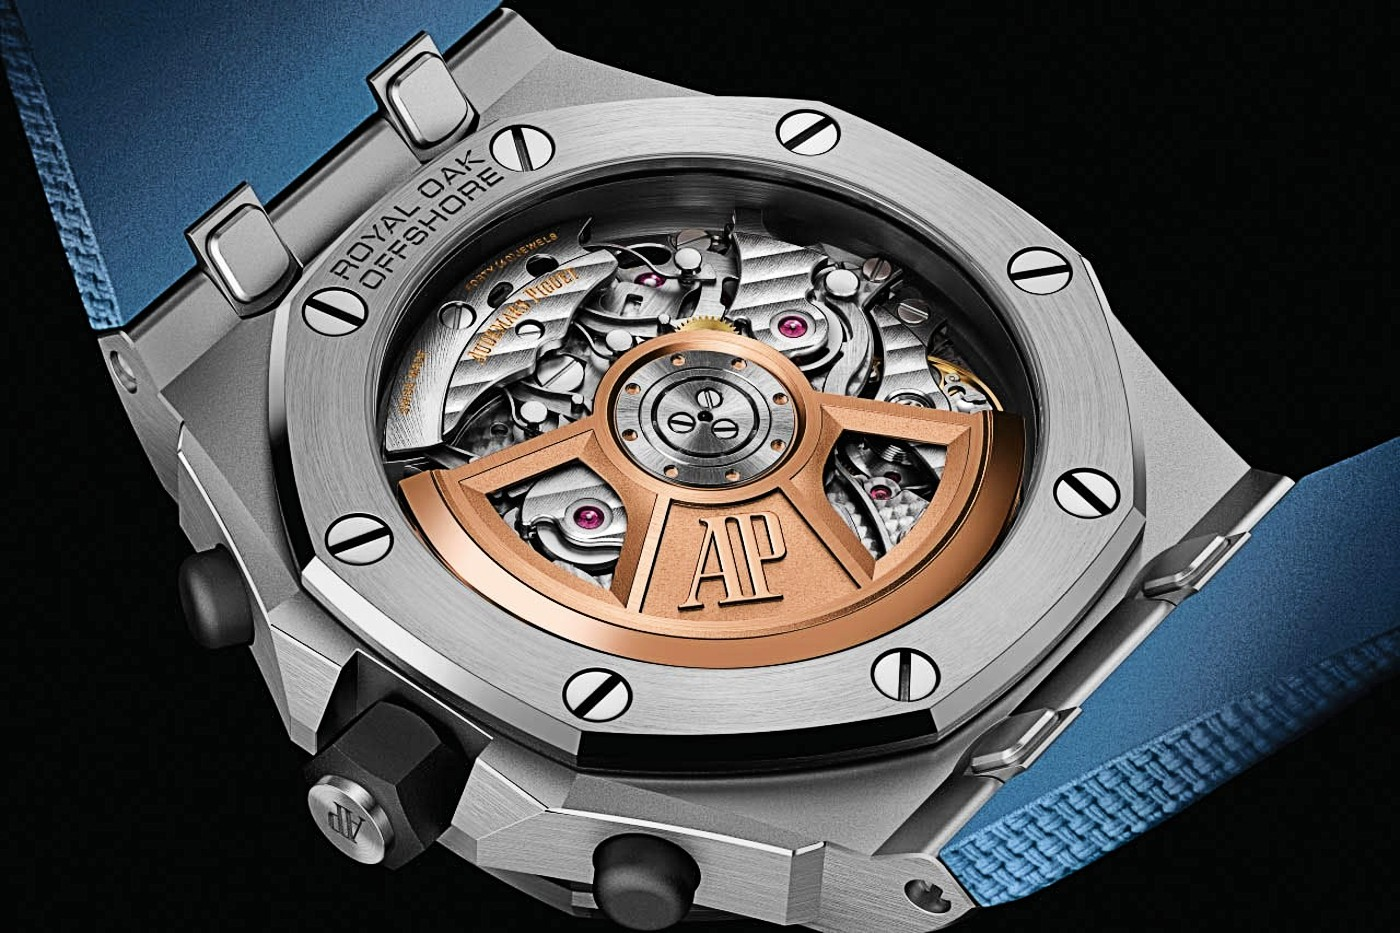 6 The back of the steel Mega Tapisserie Royal Oak Offshore with cal. 4404 3